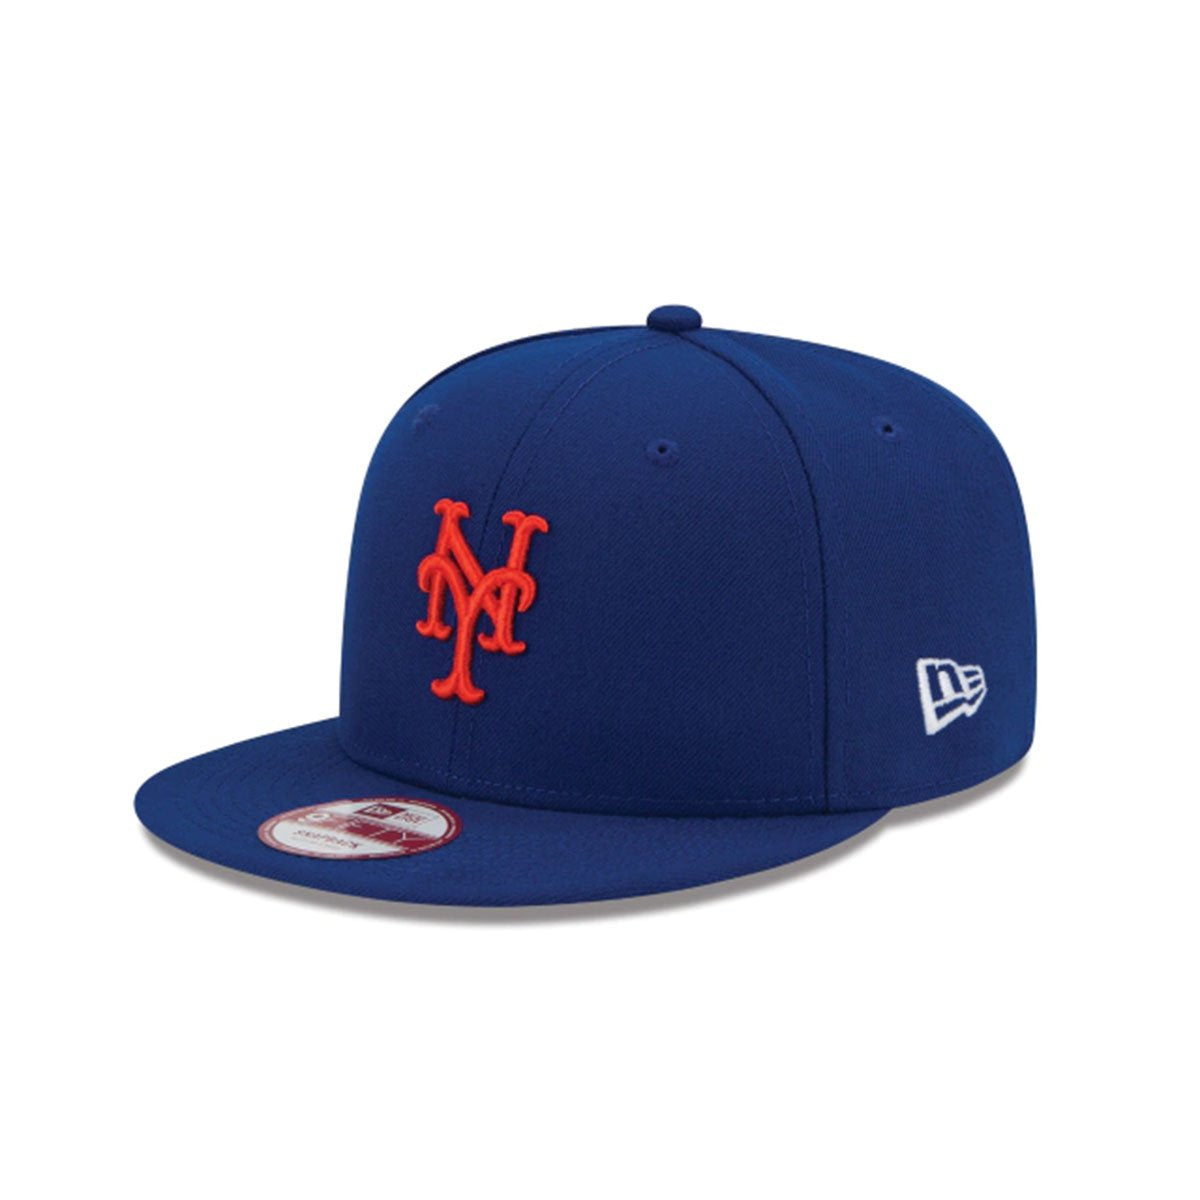 NEW YORK METS 9FIFTY SNAPBACK BLUE/ORANGE